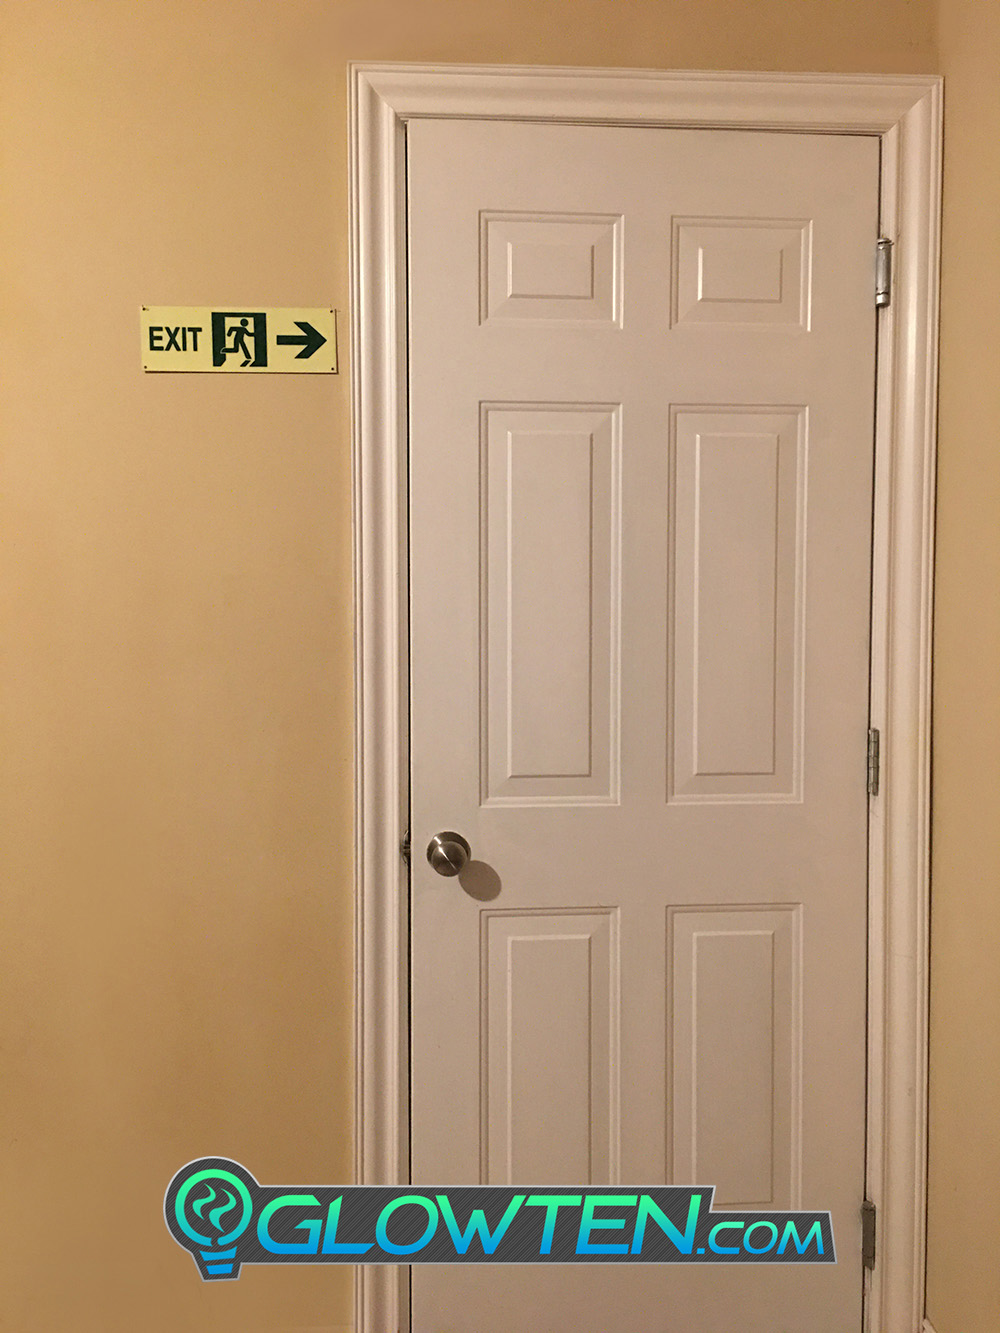 GLOWTEN.com - Glow in the Dark FIRE EXIT ESCAPE SIGN Right Arrow Eco Friendly Photoluminescent Material Green escape route safety sign picture photo cap preview pic image search 5